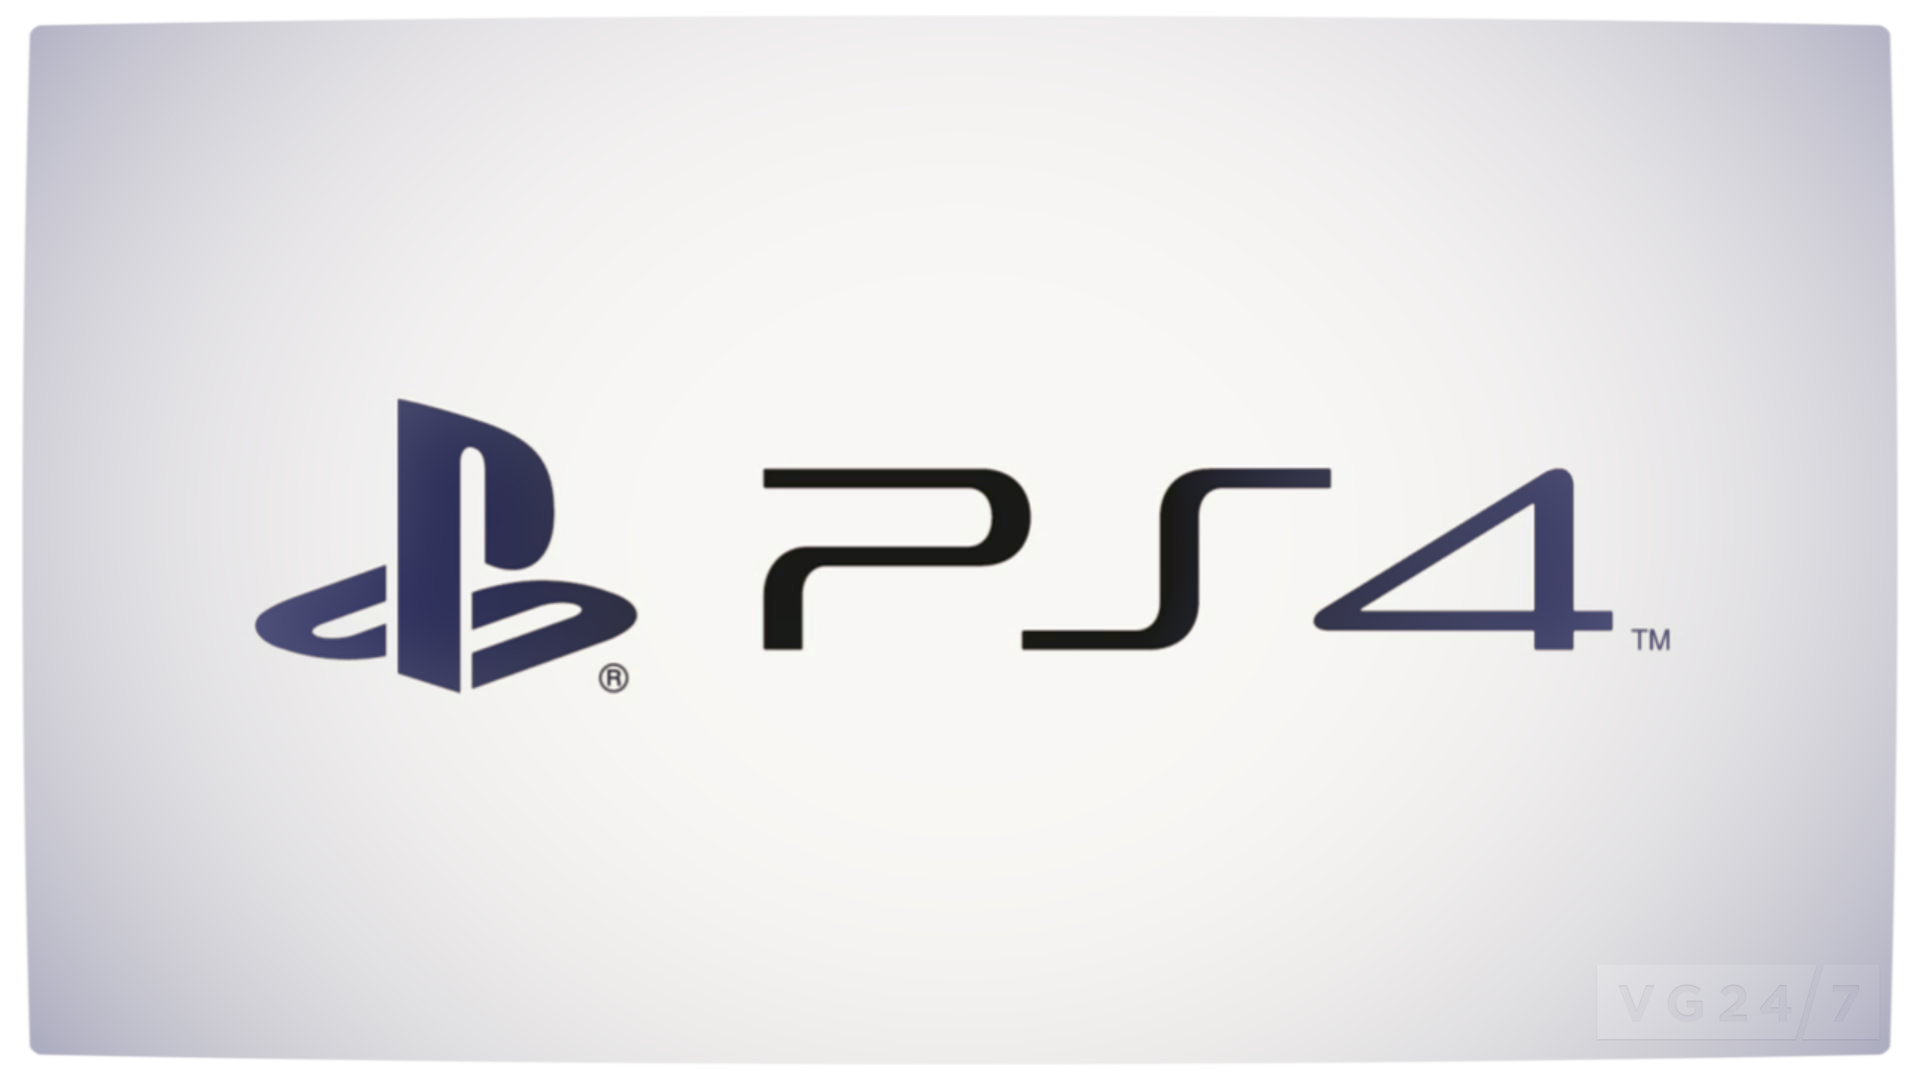 4 PS2-era Series Sony Should Resurrect On The PS4